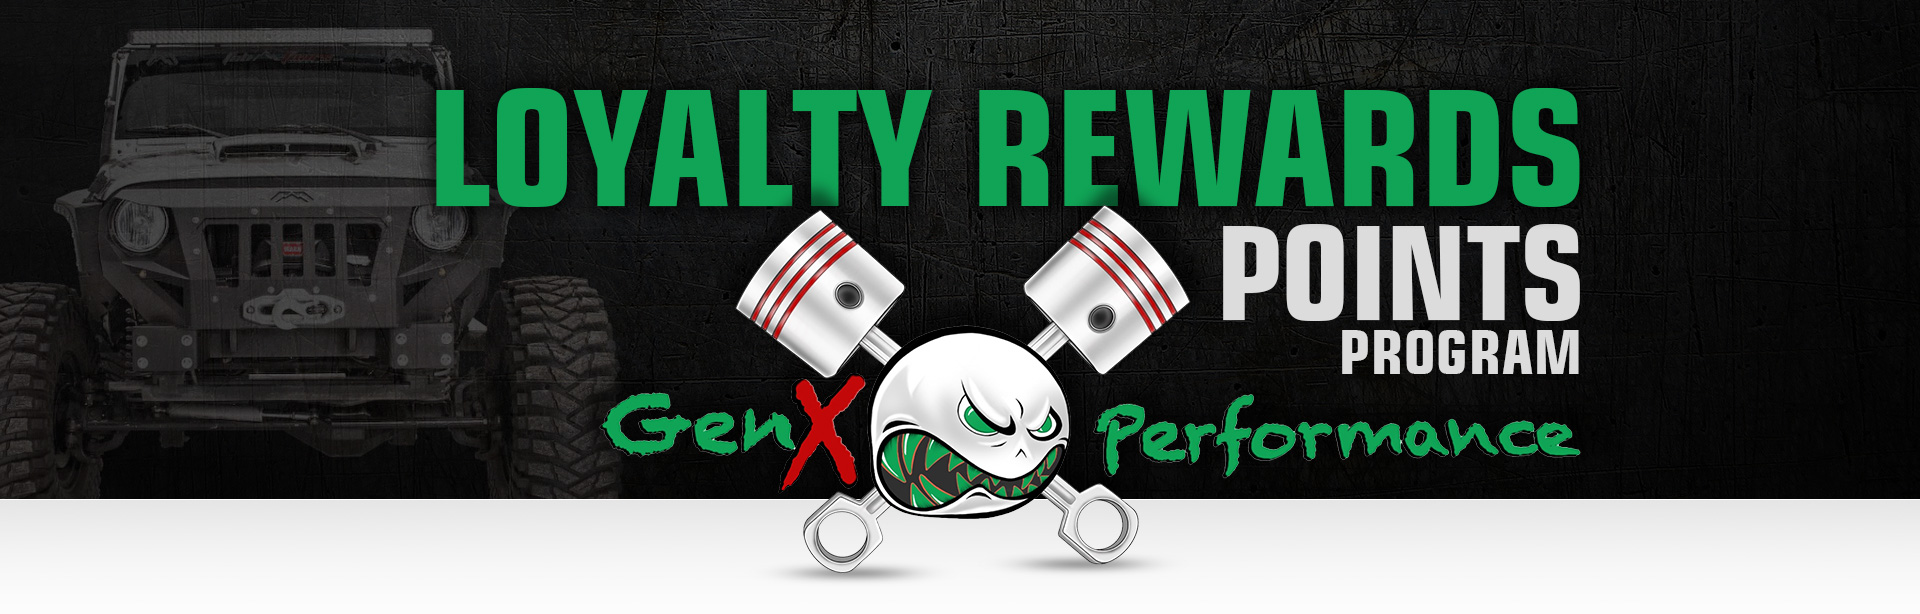 genx-rewards-program.jpg